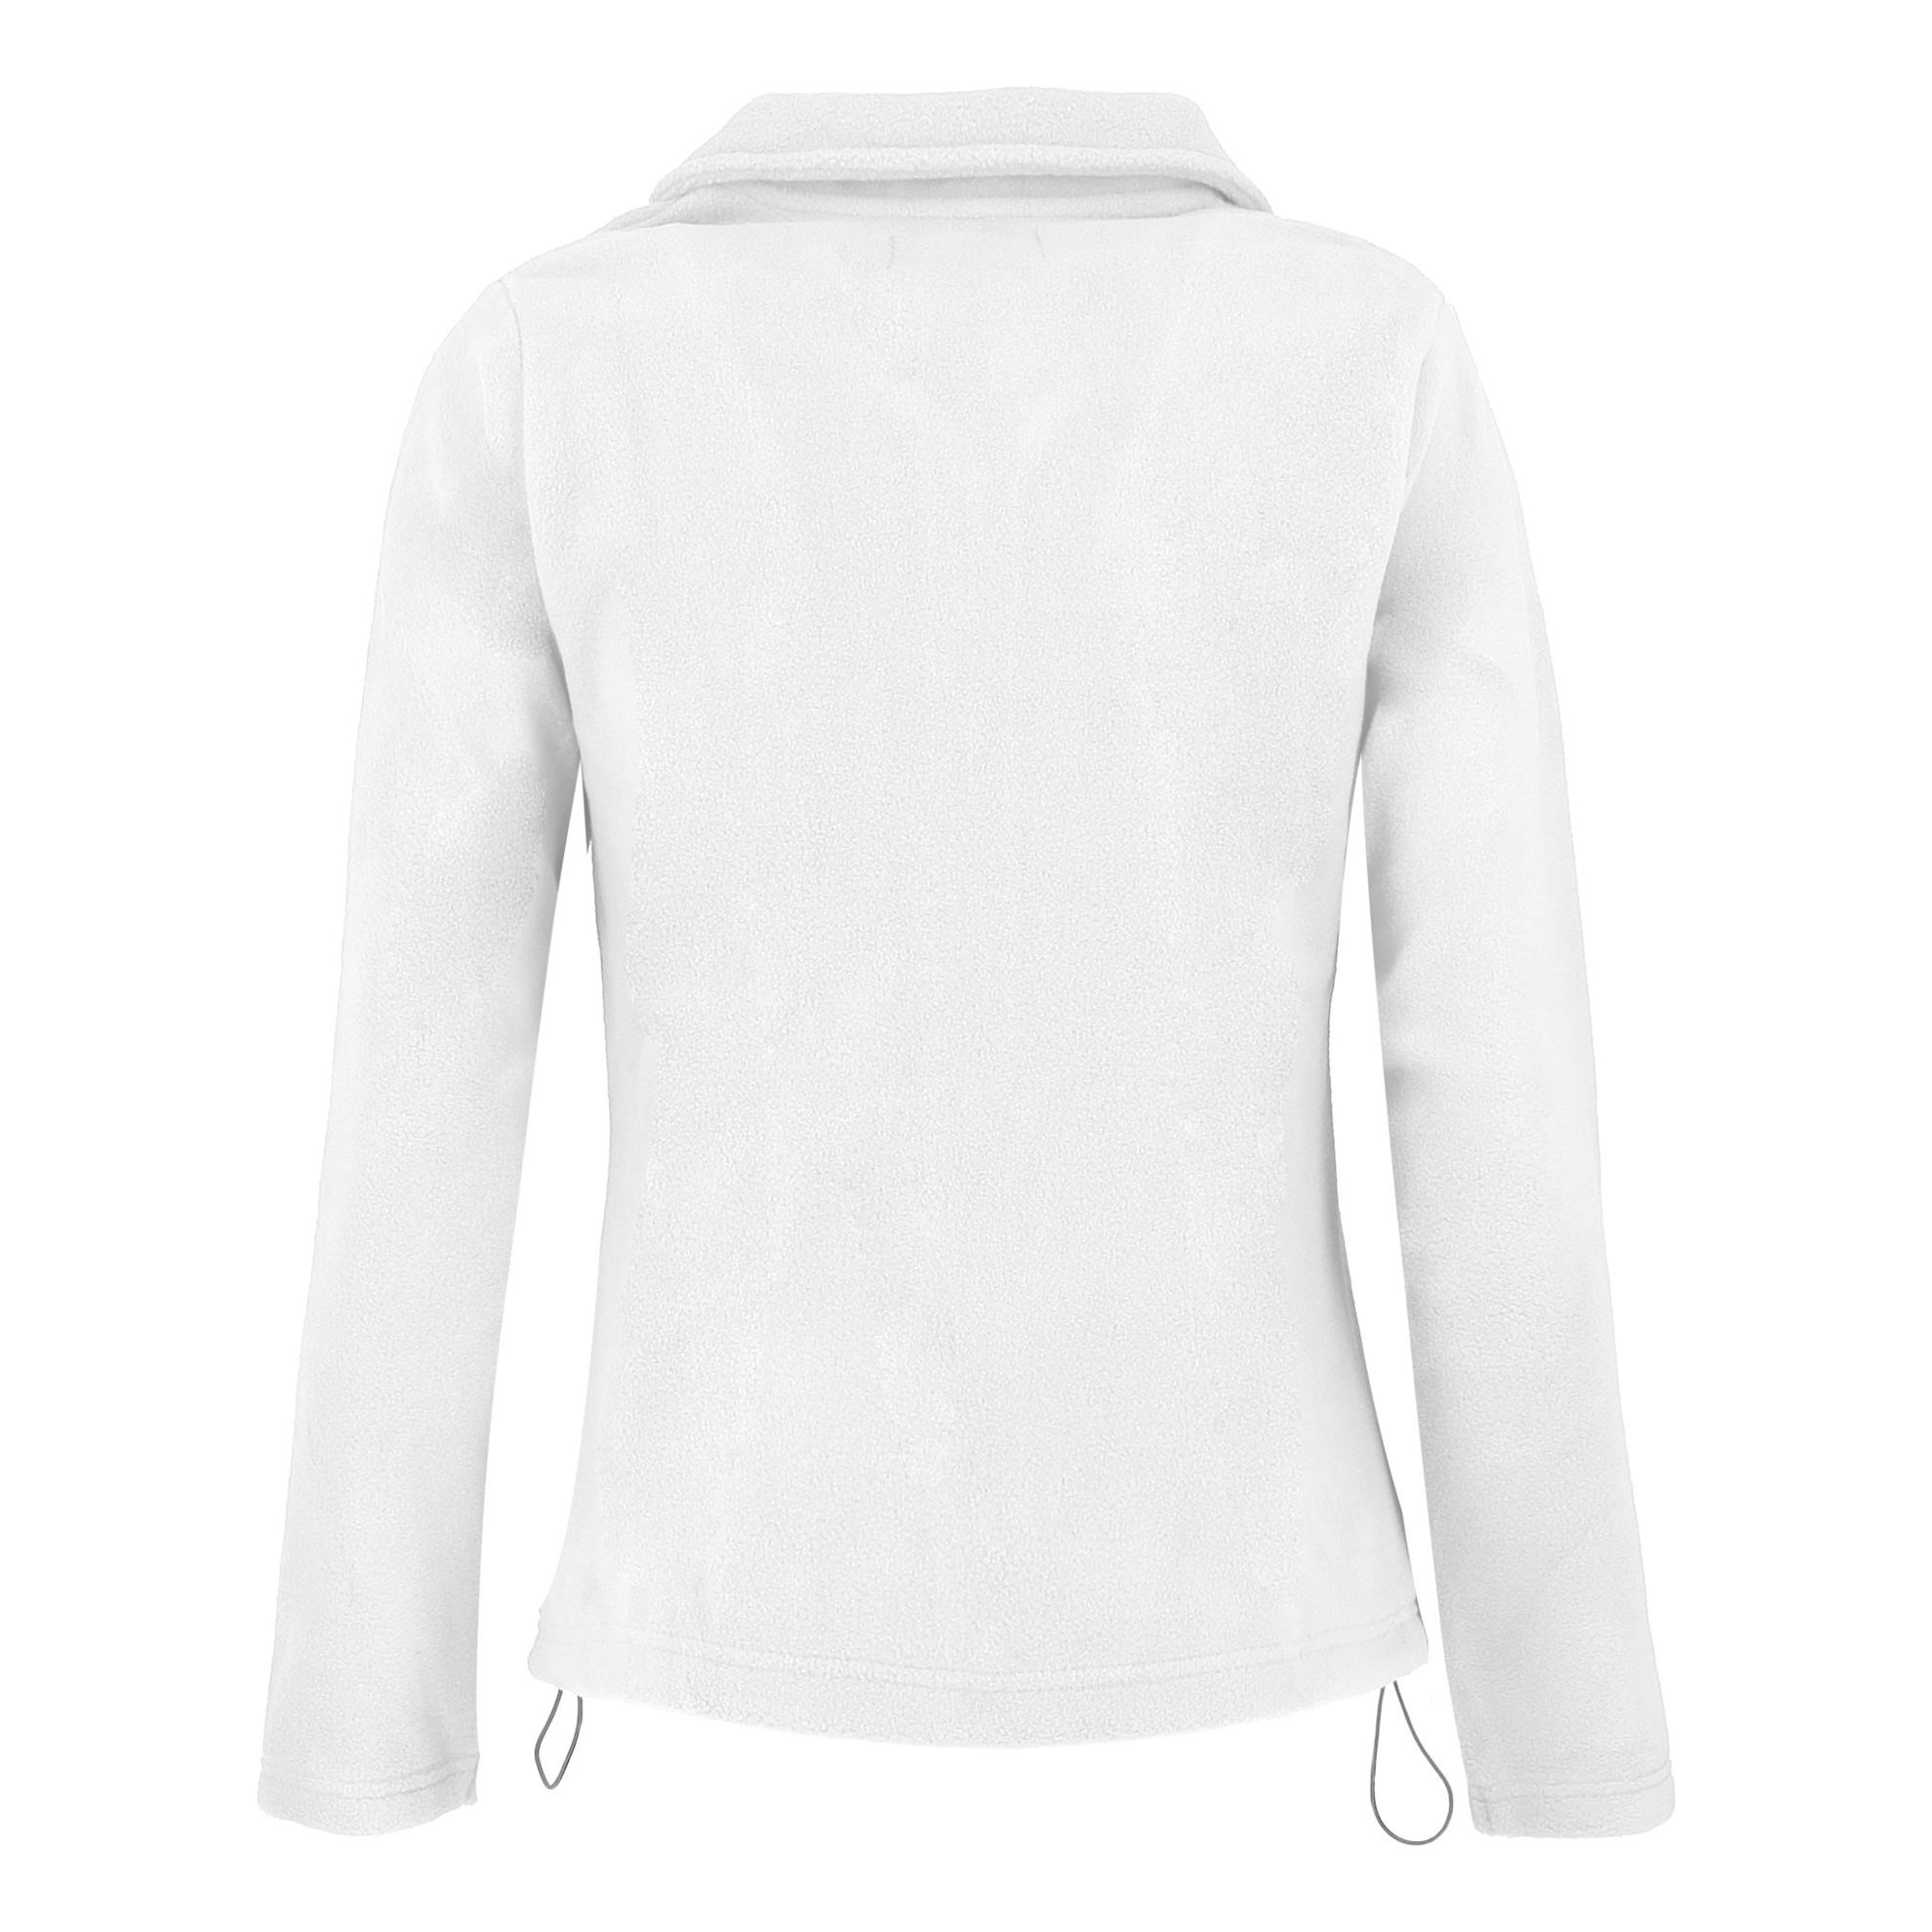 Immagine di BRUGI - PILE FULL ZIP DONNA WHITE